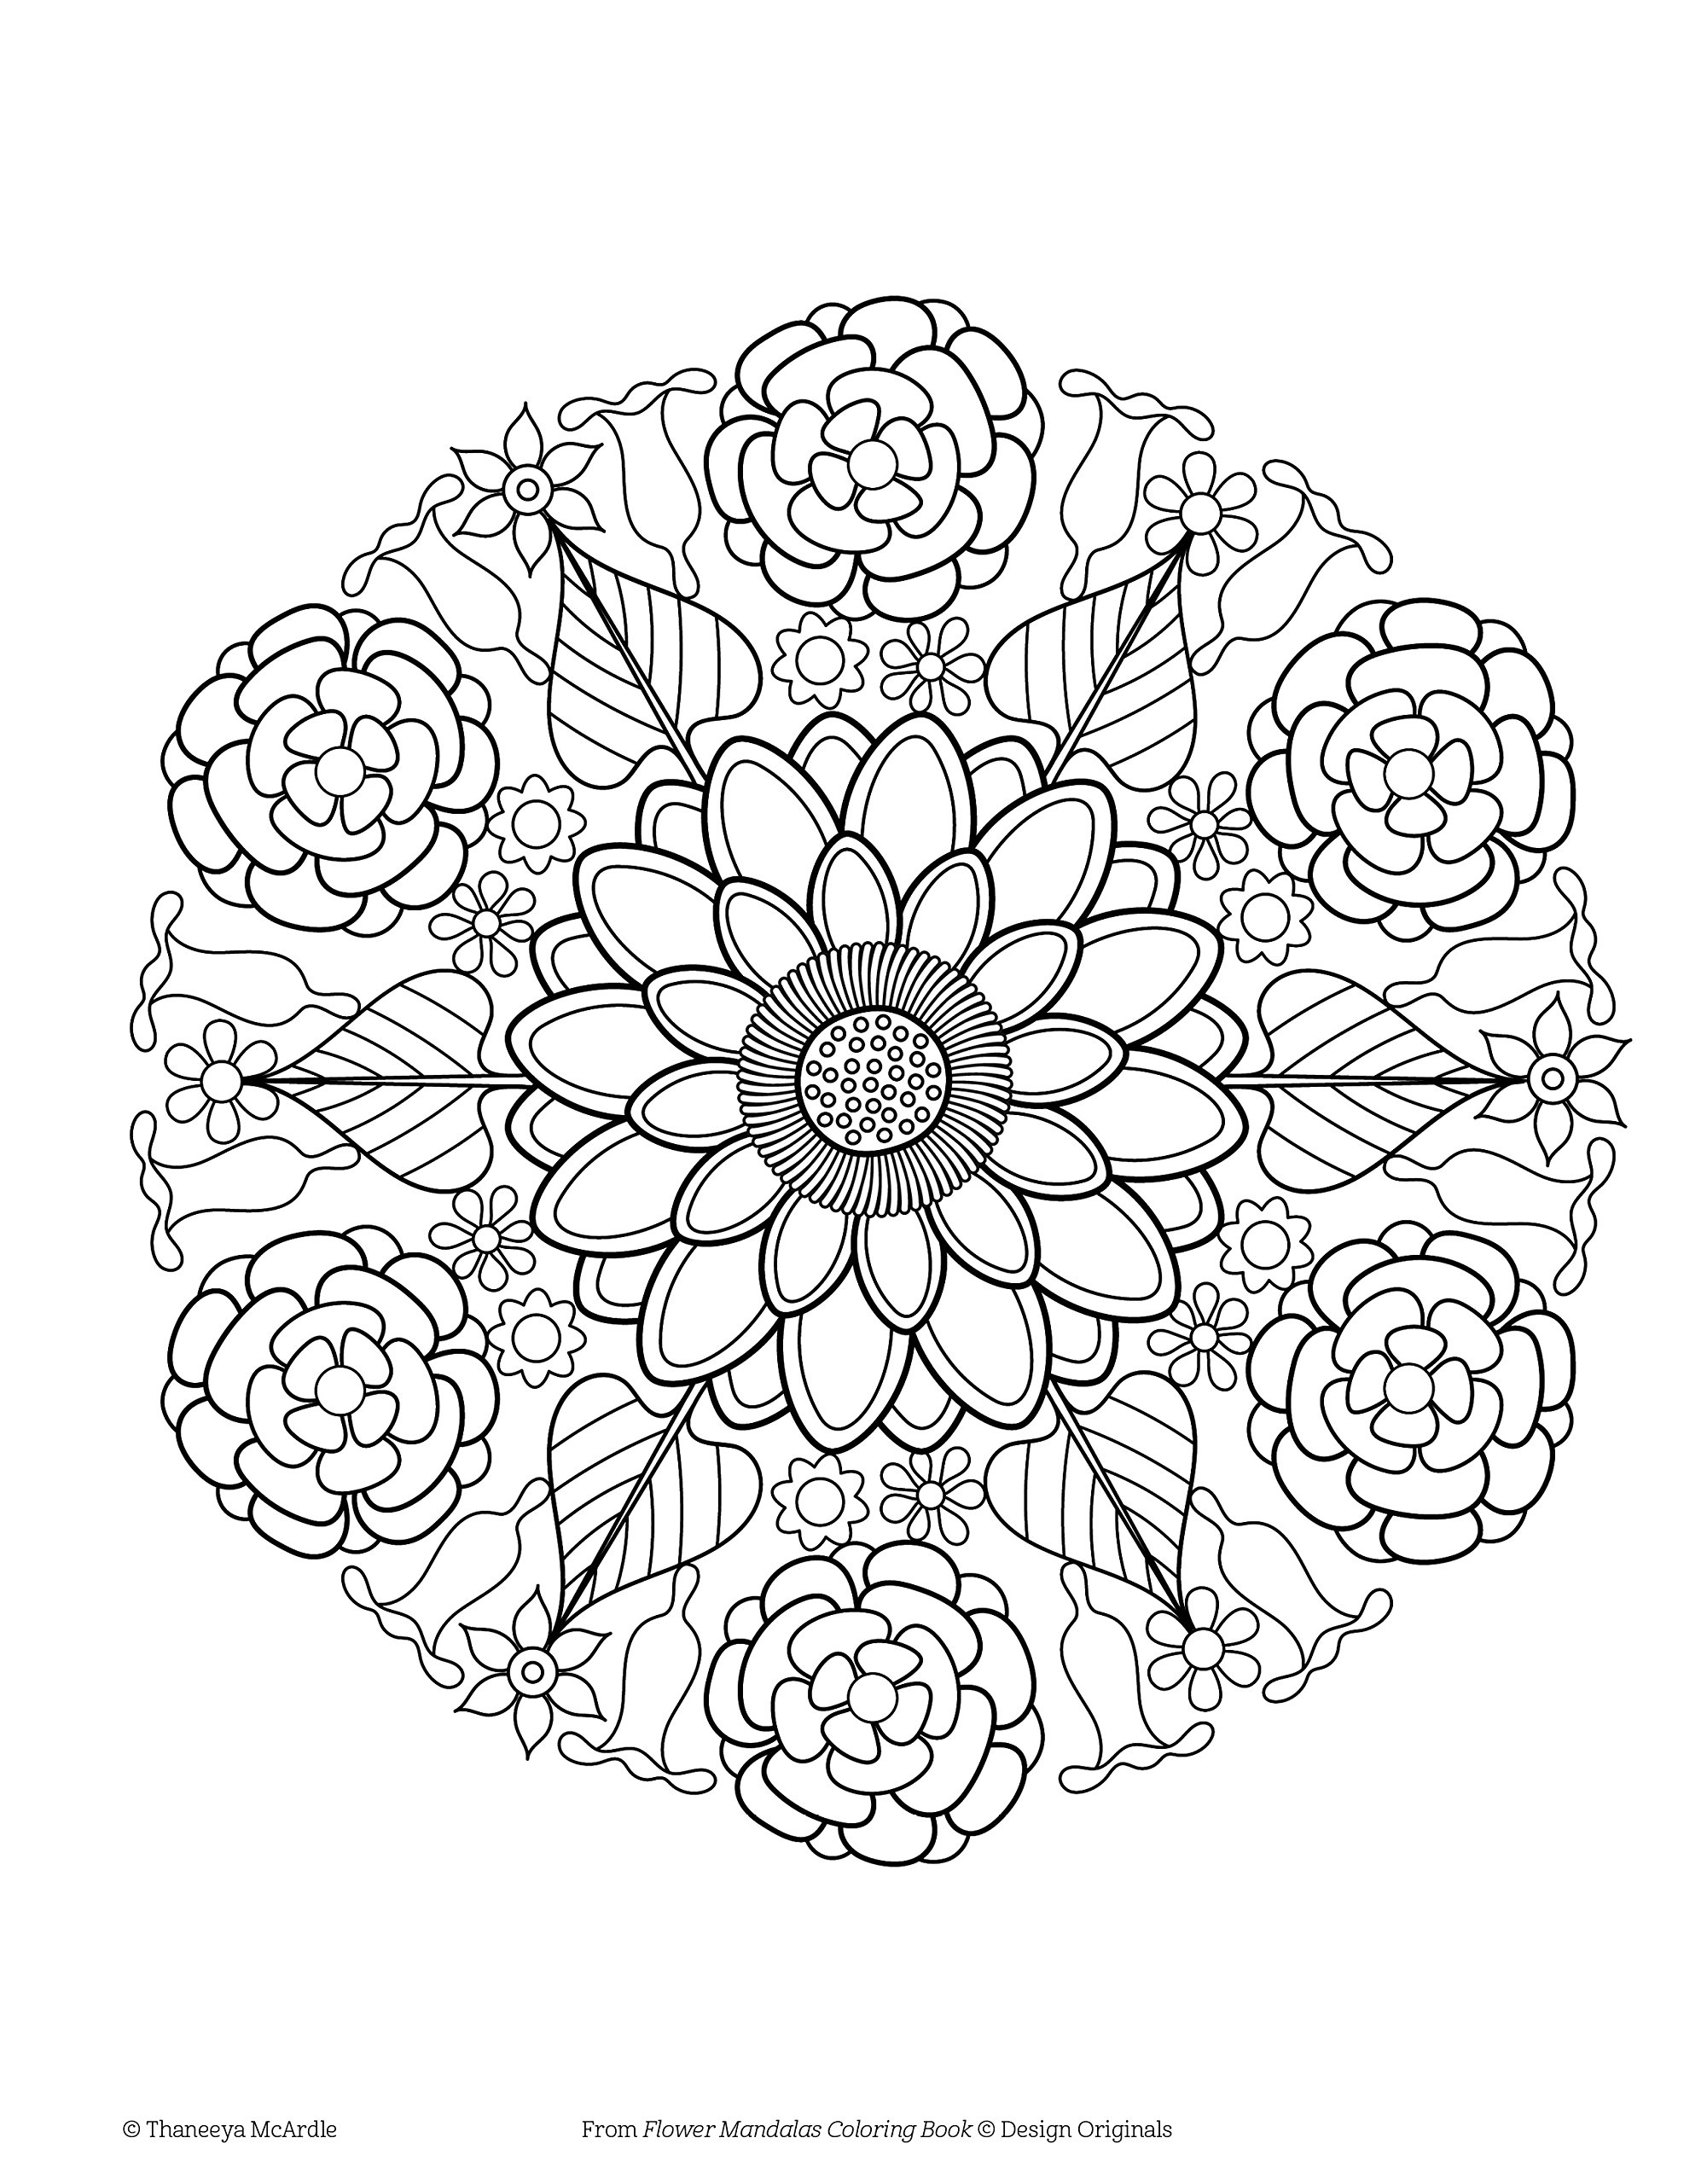 Amazon.com: Flower Mandalas Coloring Book (Coloring Is Fun) (Design ...